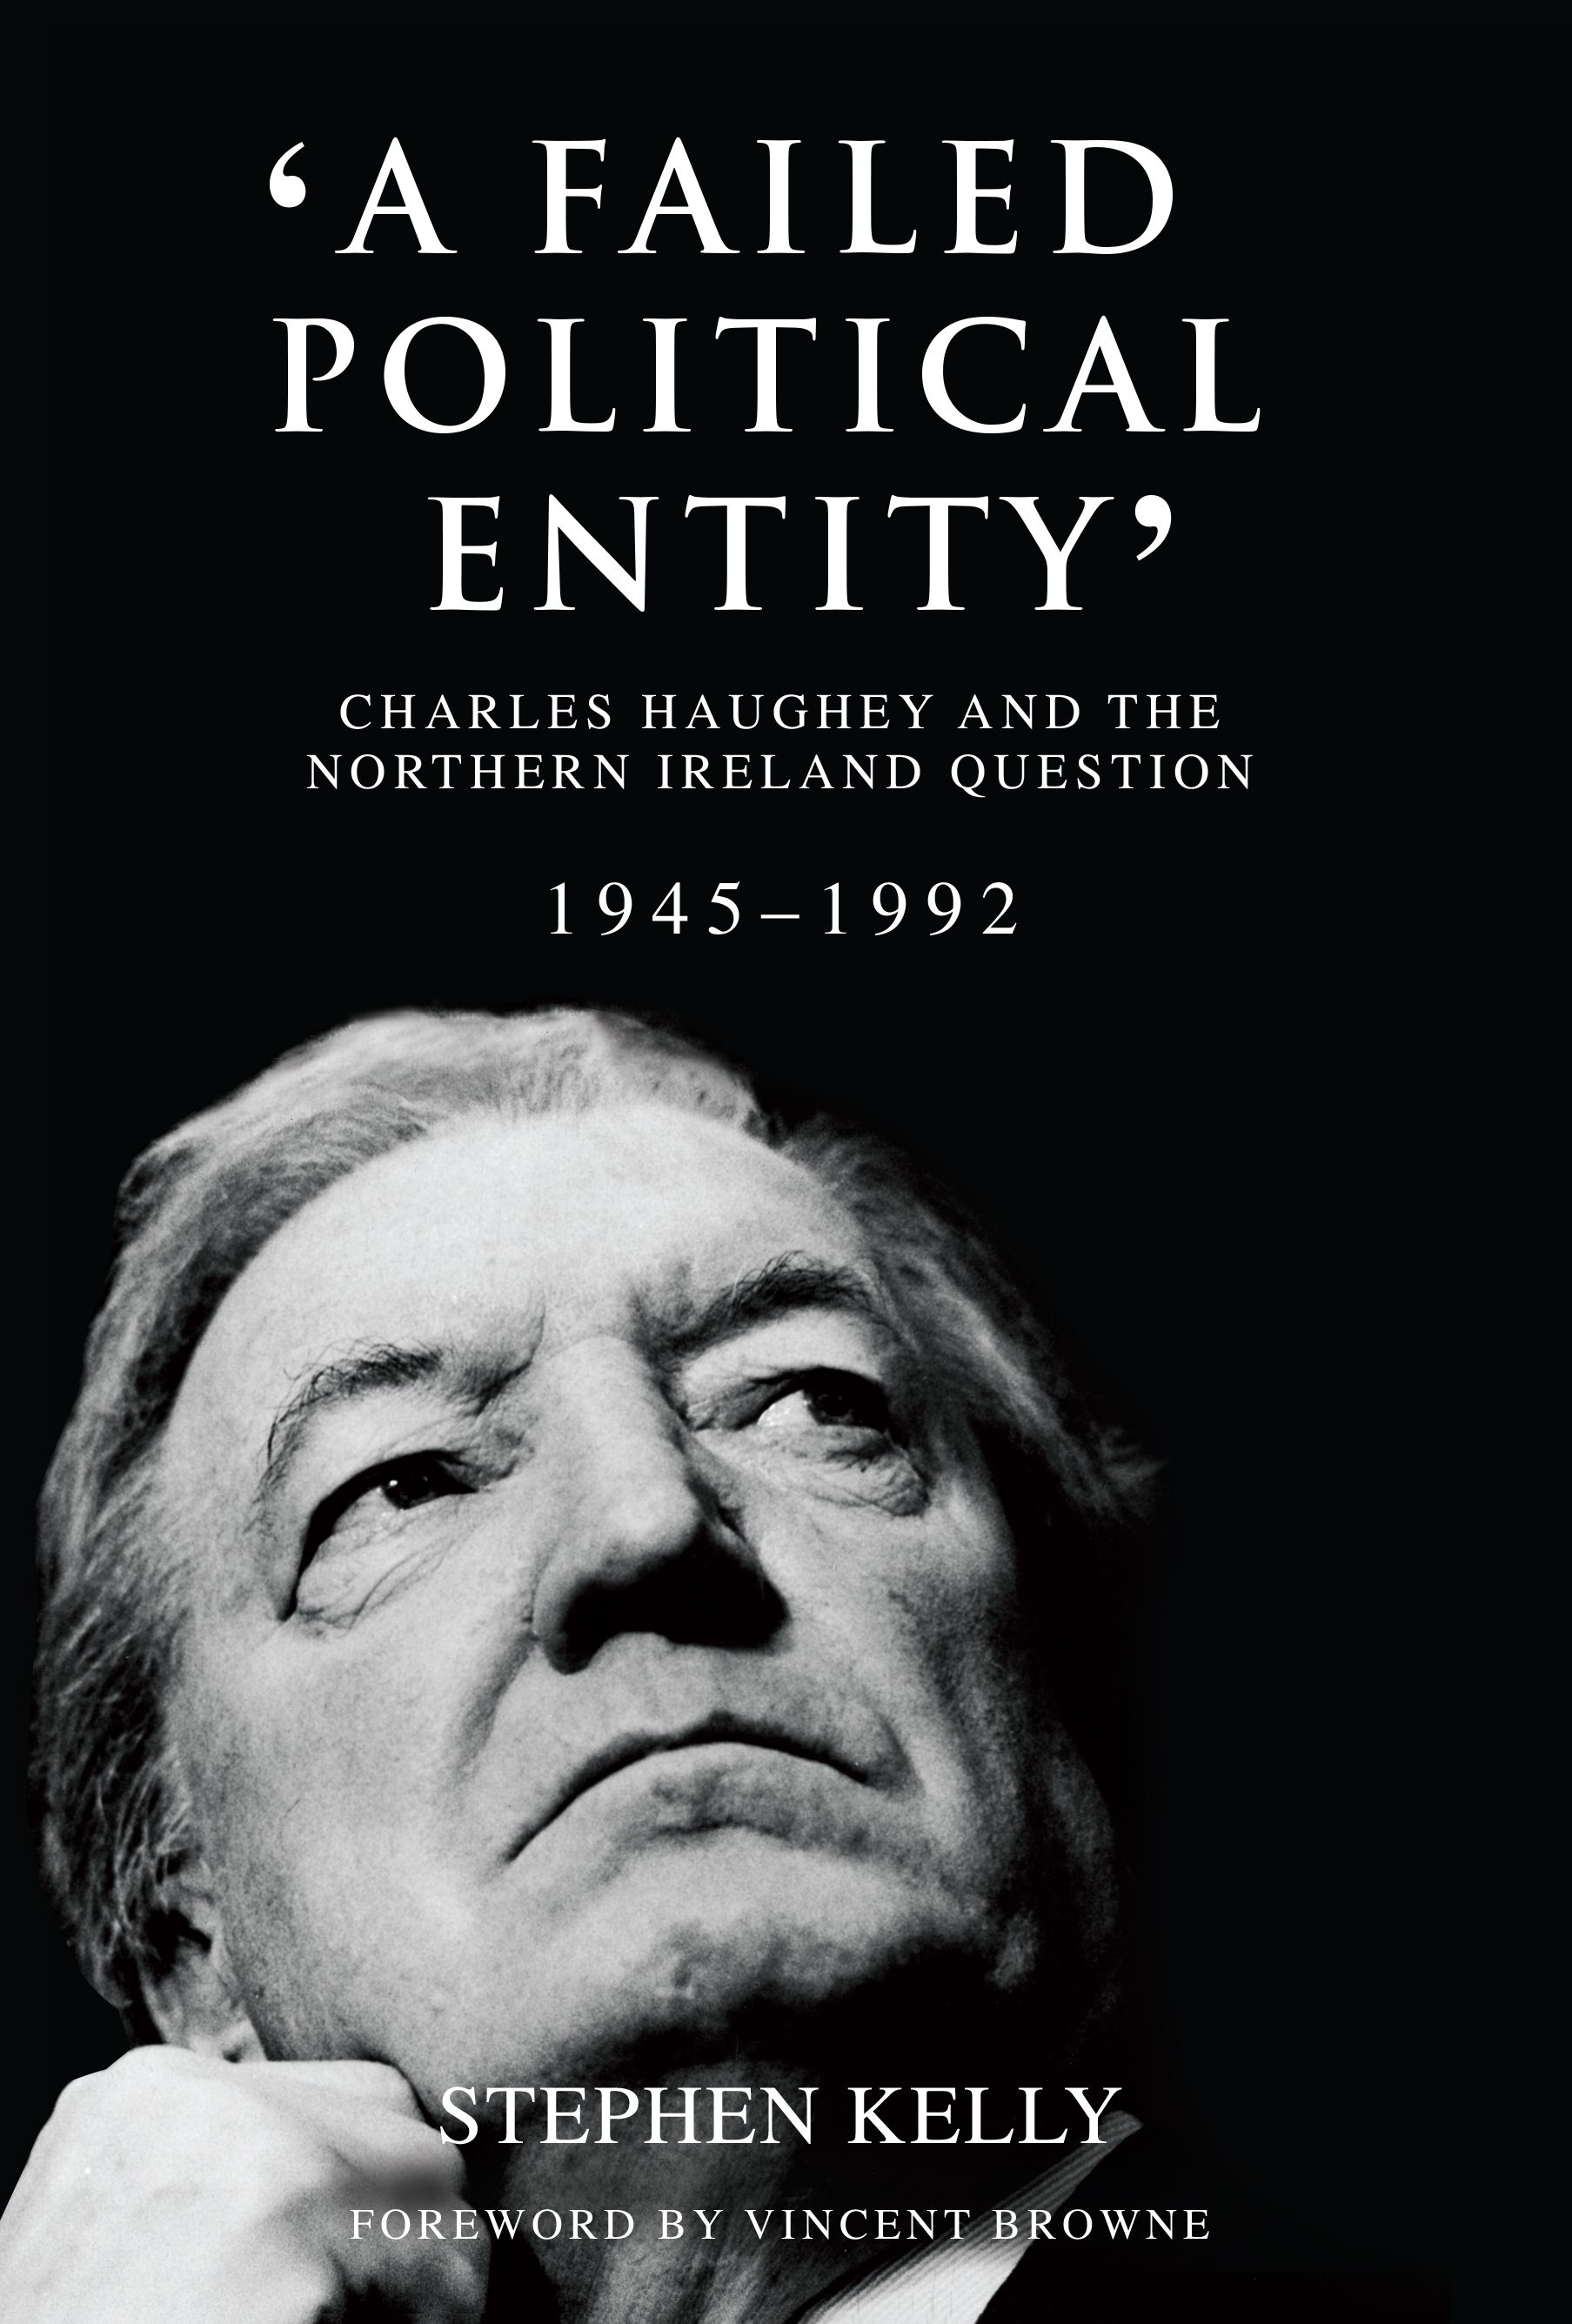 a-failed-political-entity-charles-haughey-and-the-northern-ireland-question